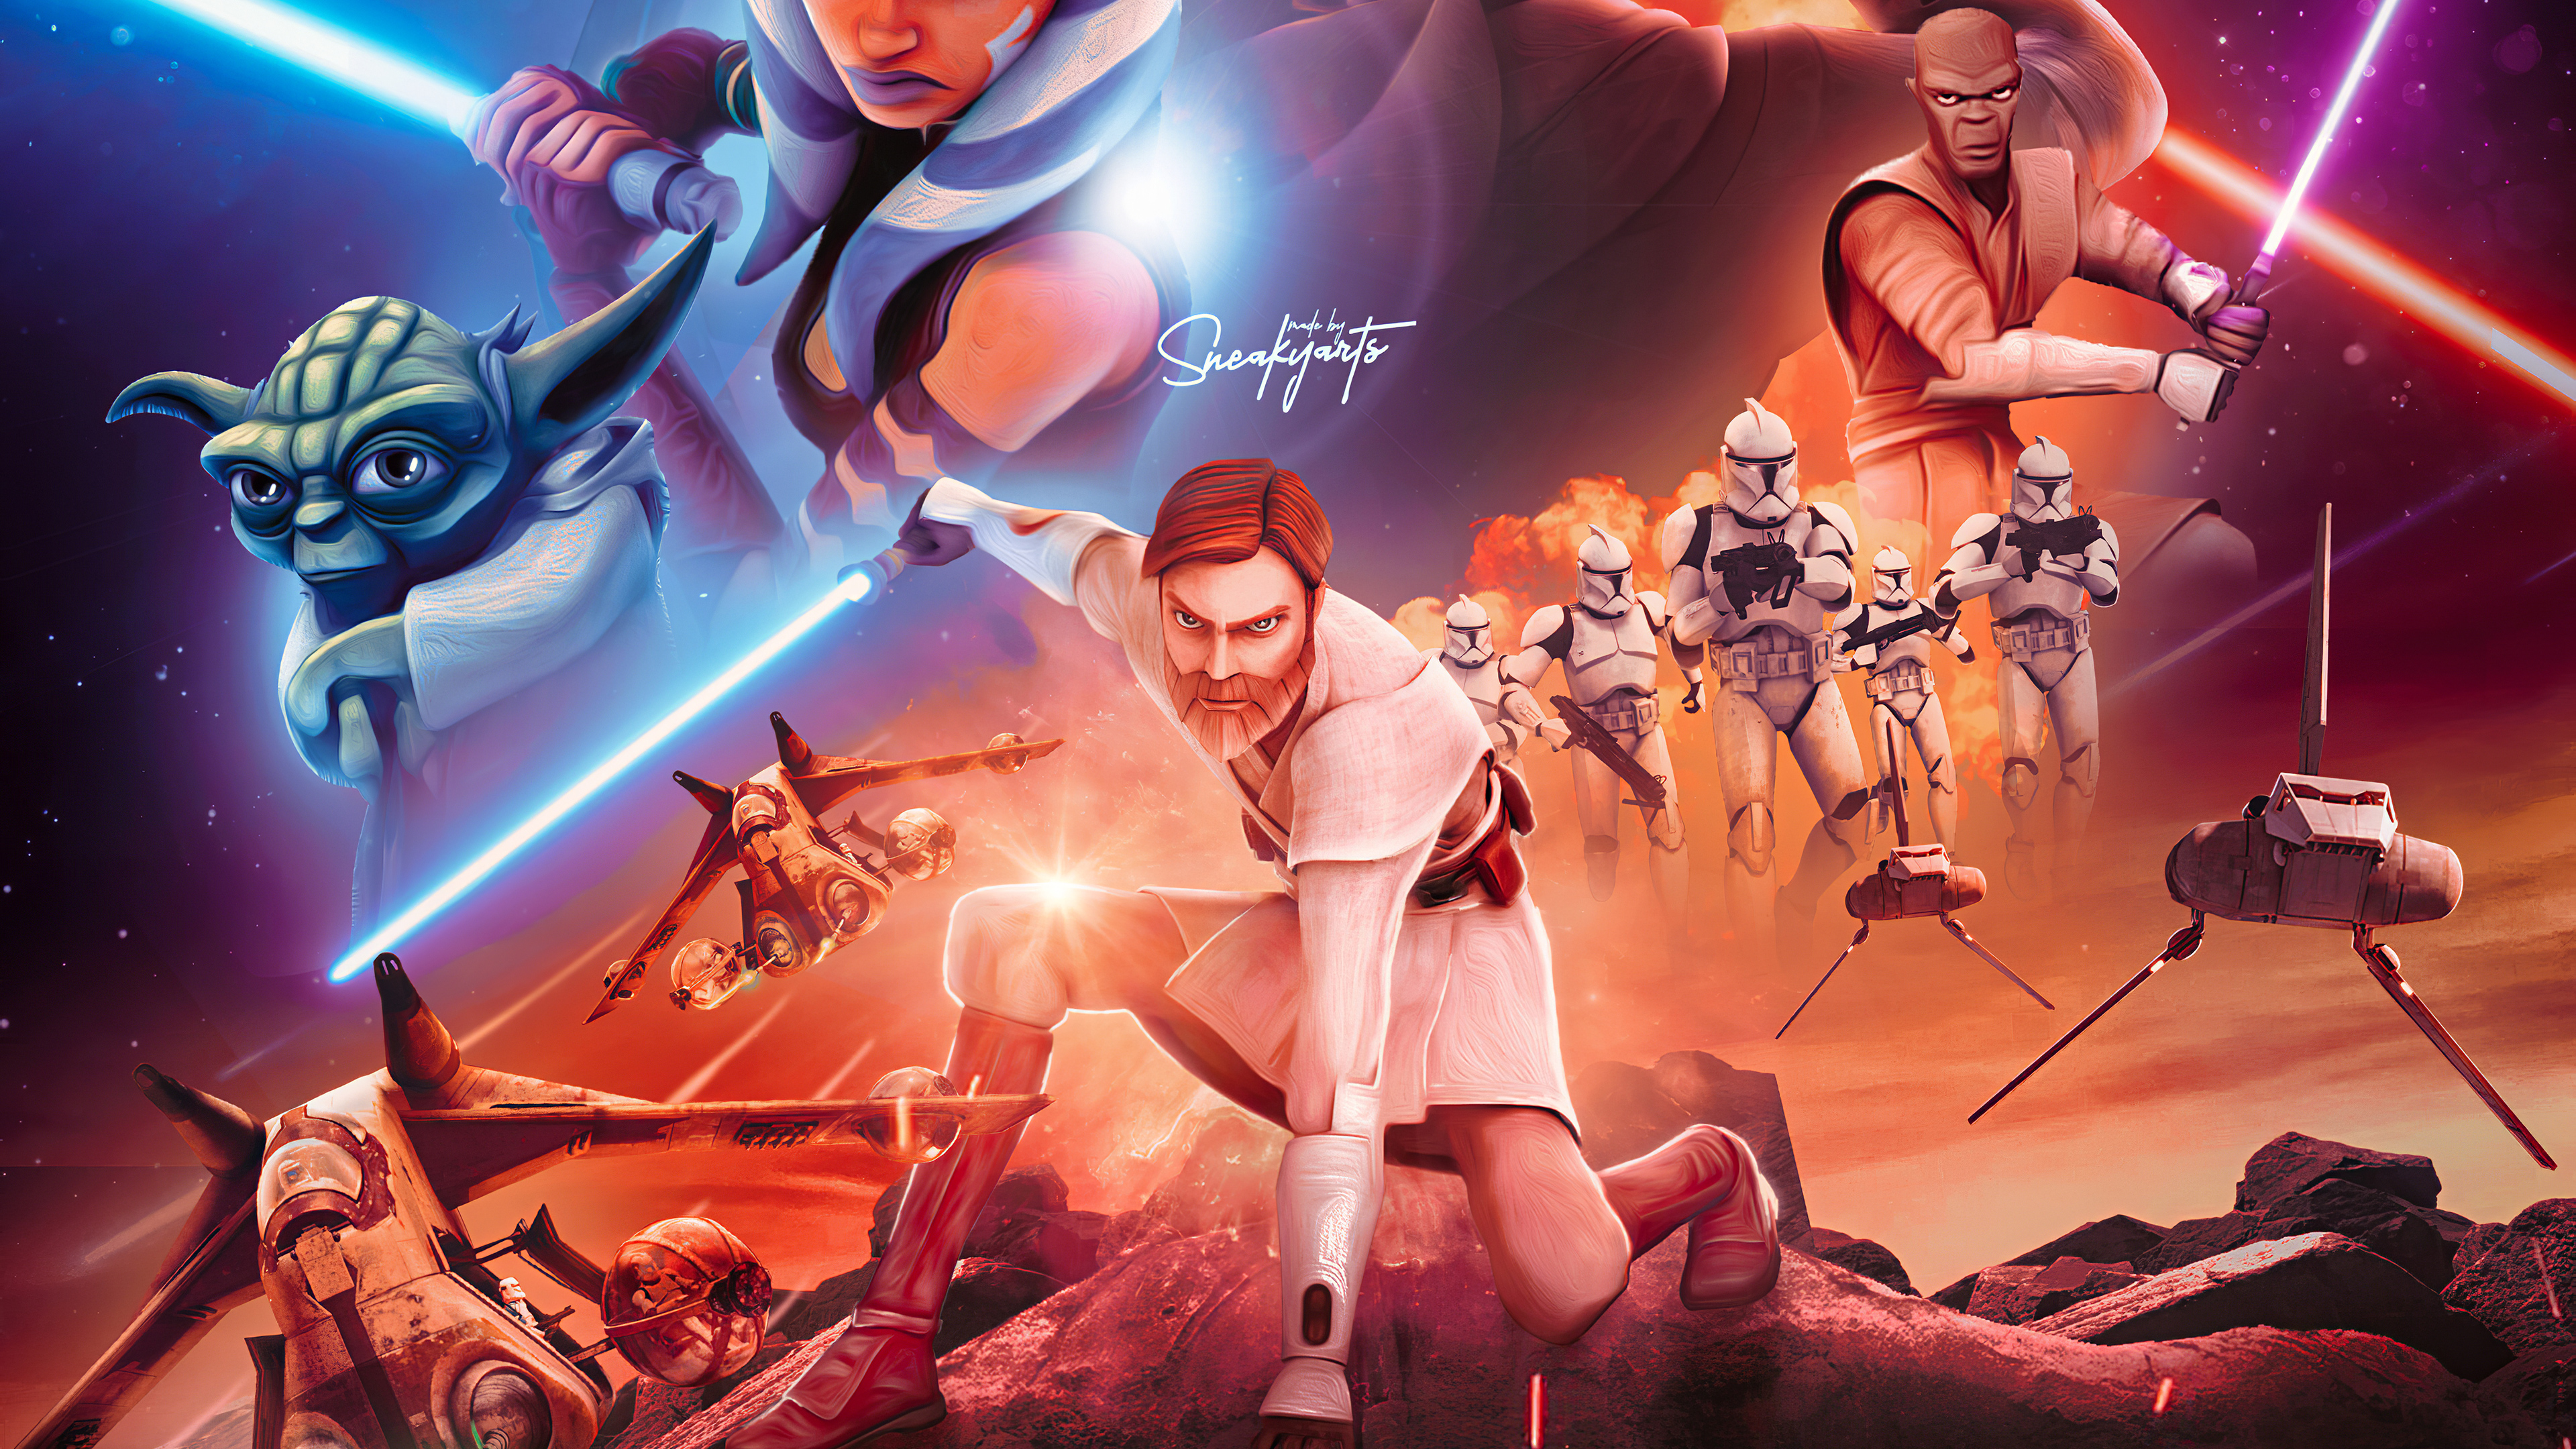 Star Wars The Clone Wars 4k Hd Tv Shows 4k Wallpapers Images